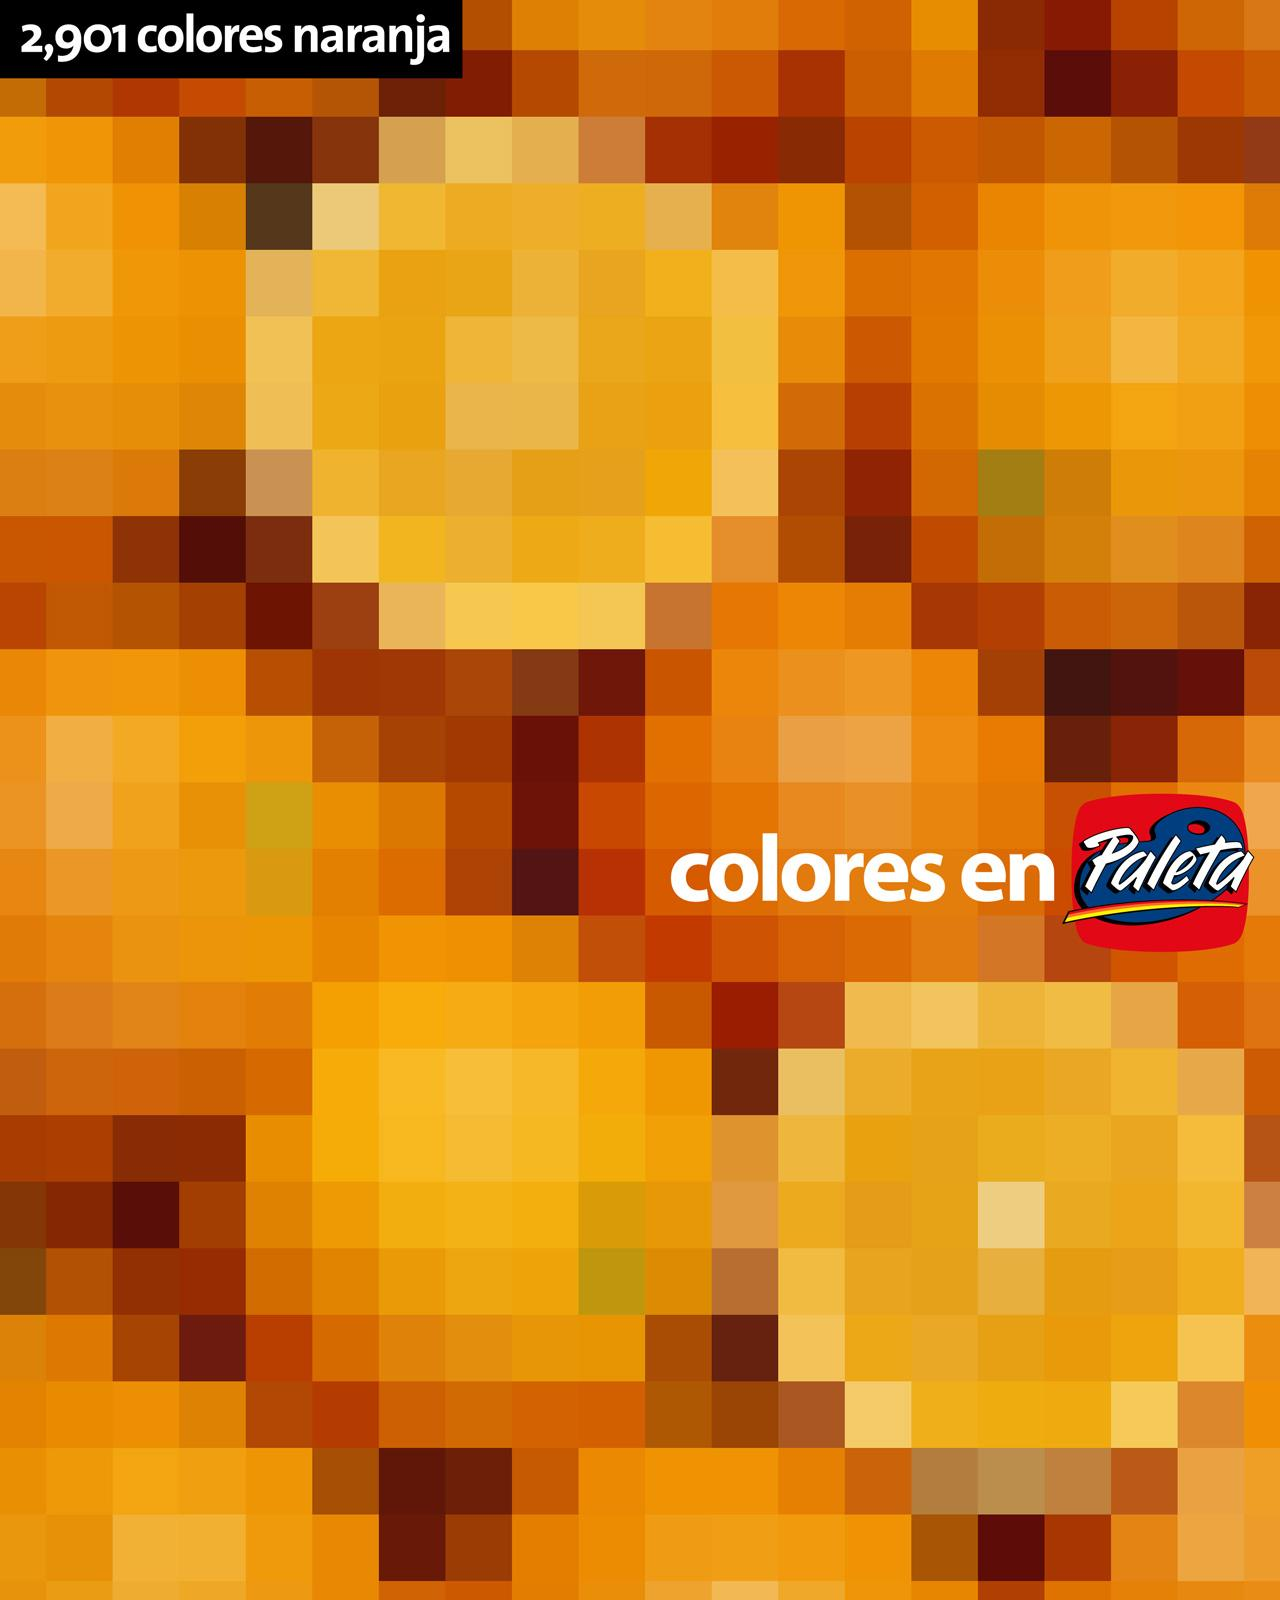 Paleta Print Ad -  Orange